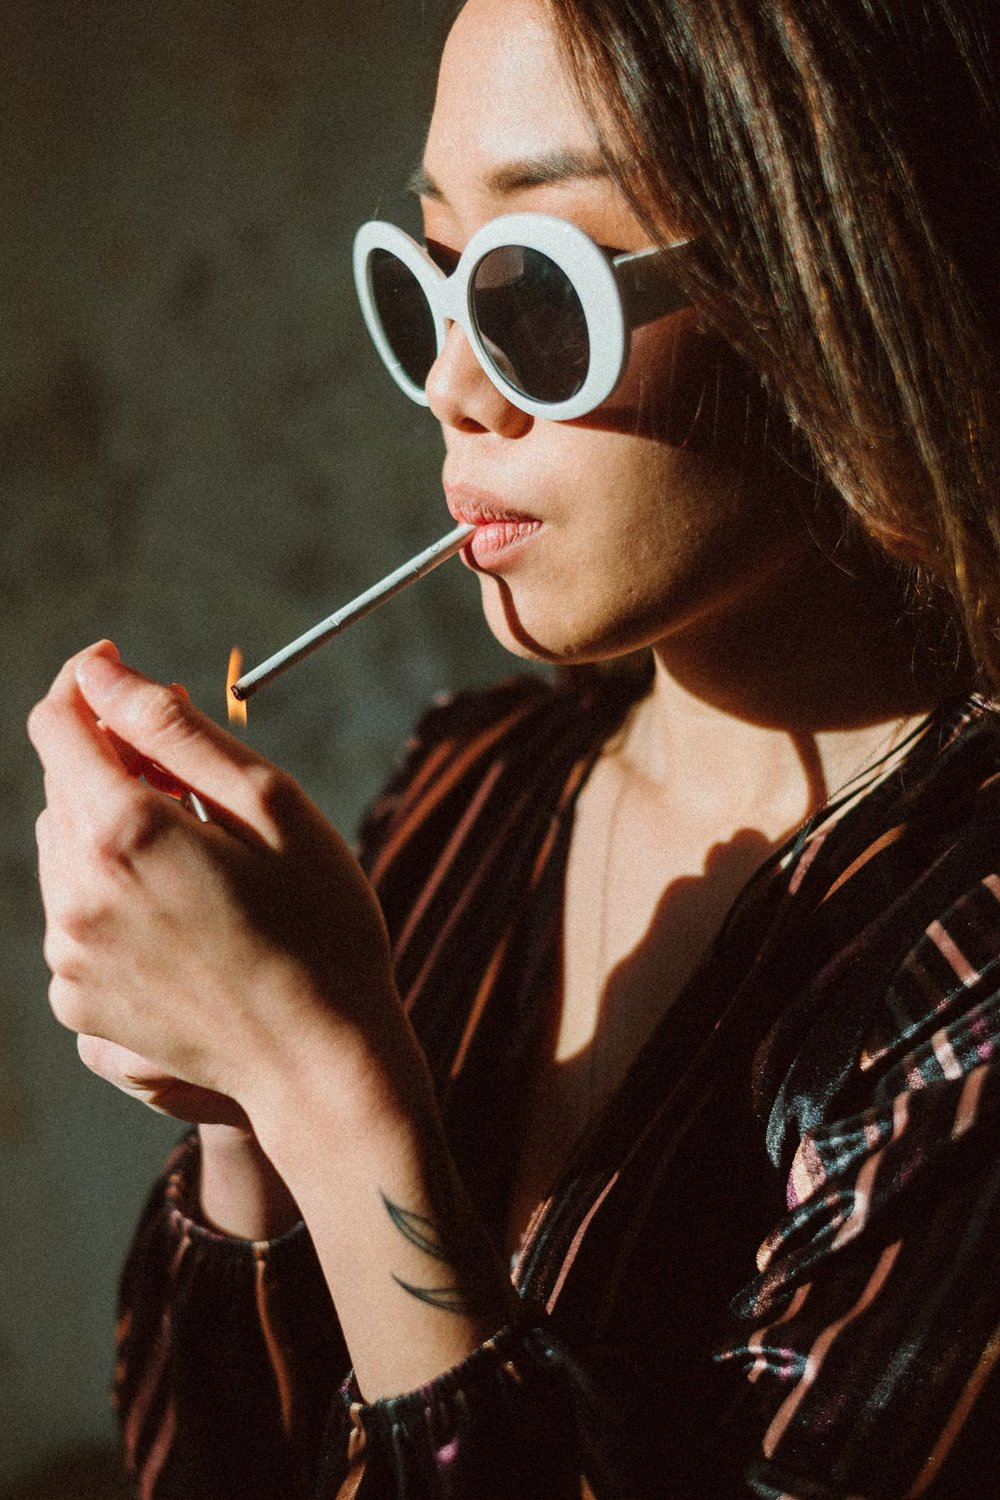 Lili vintage glasses - & a very skinny cigarette